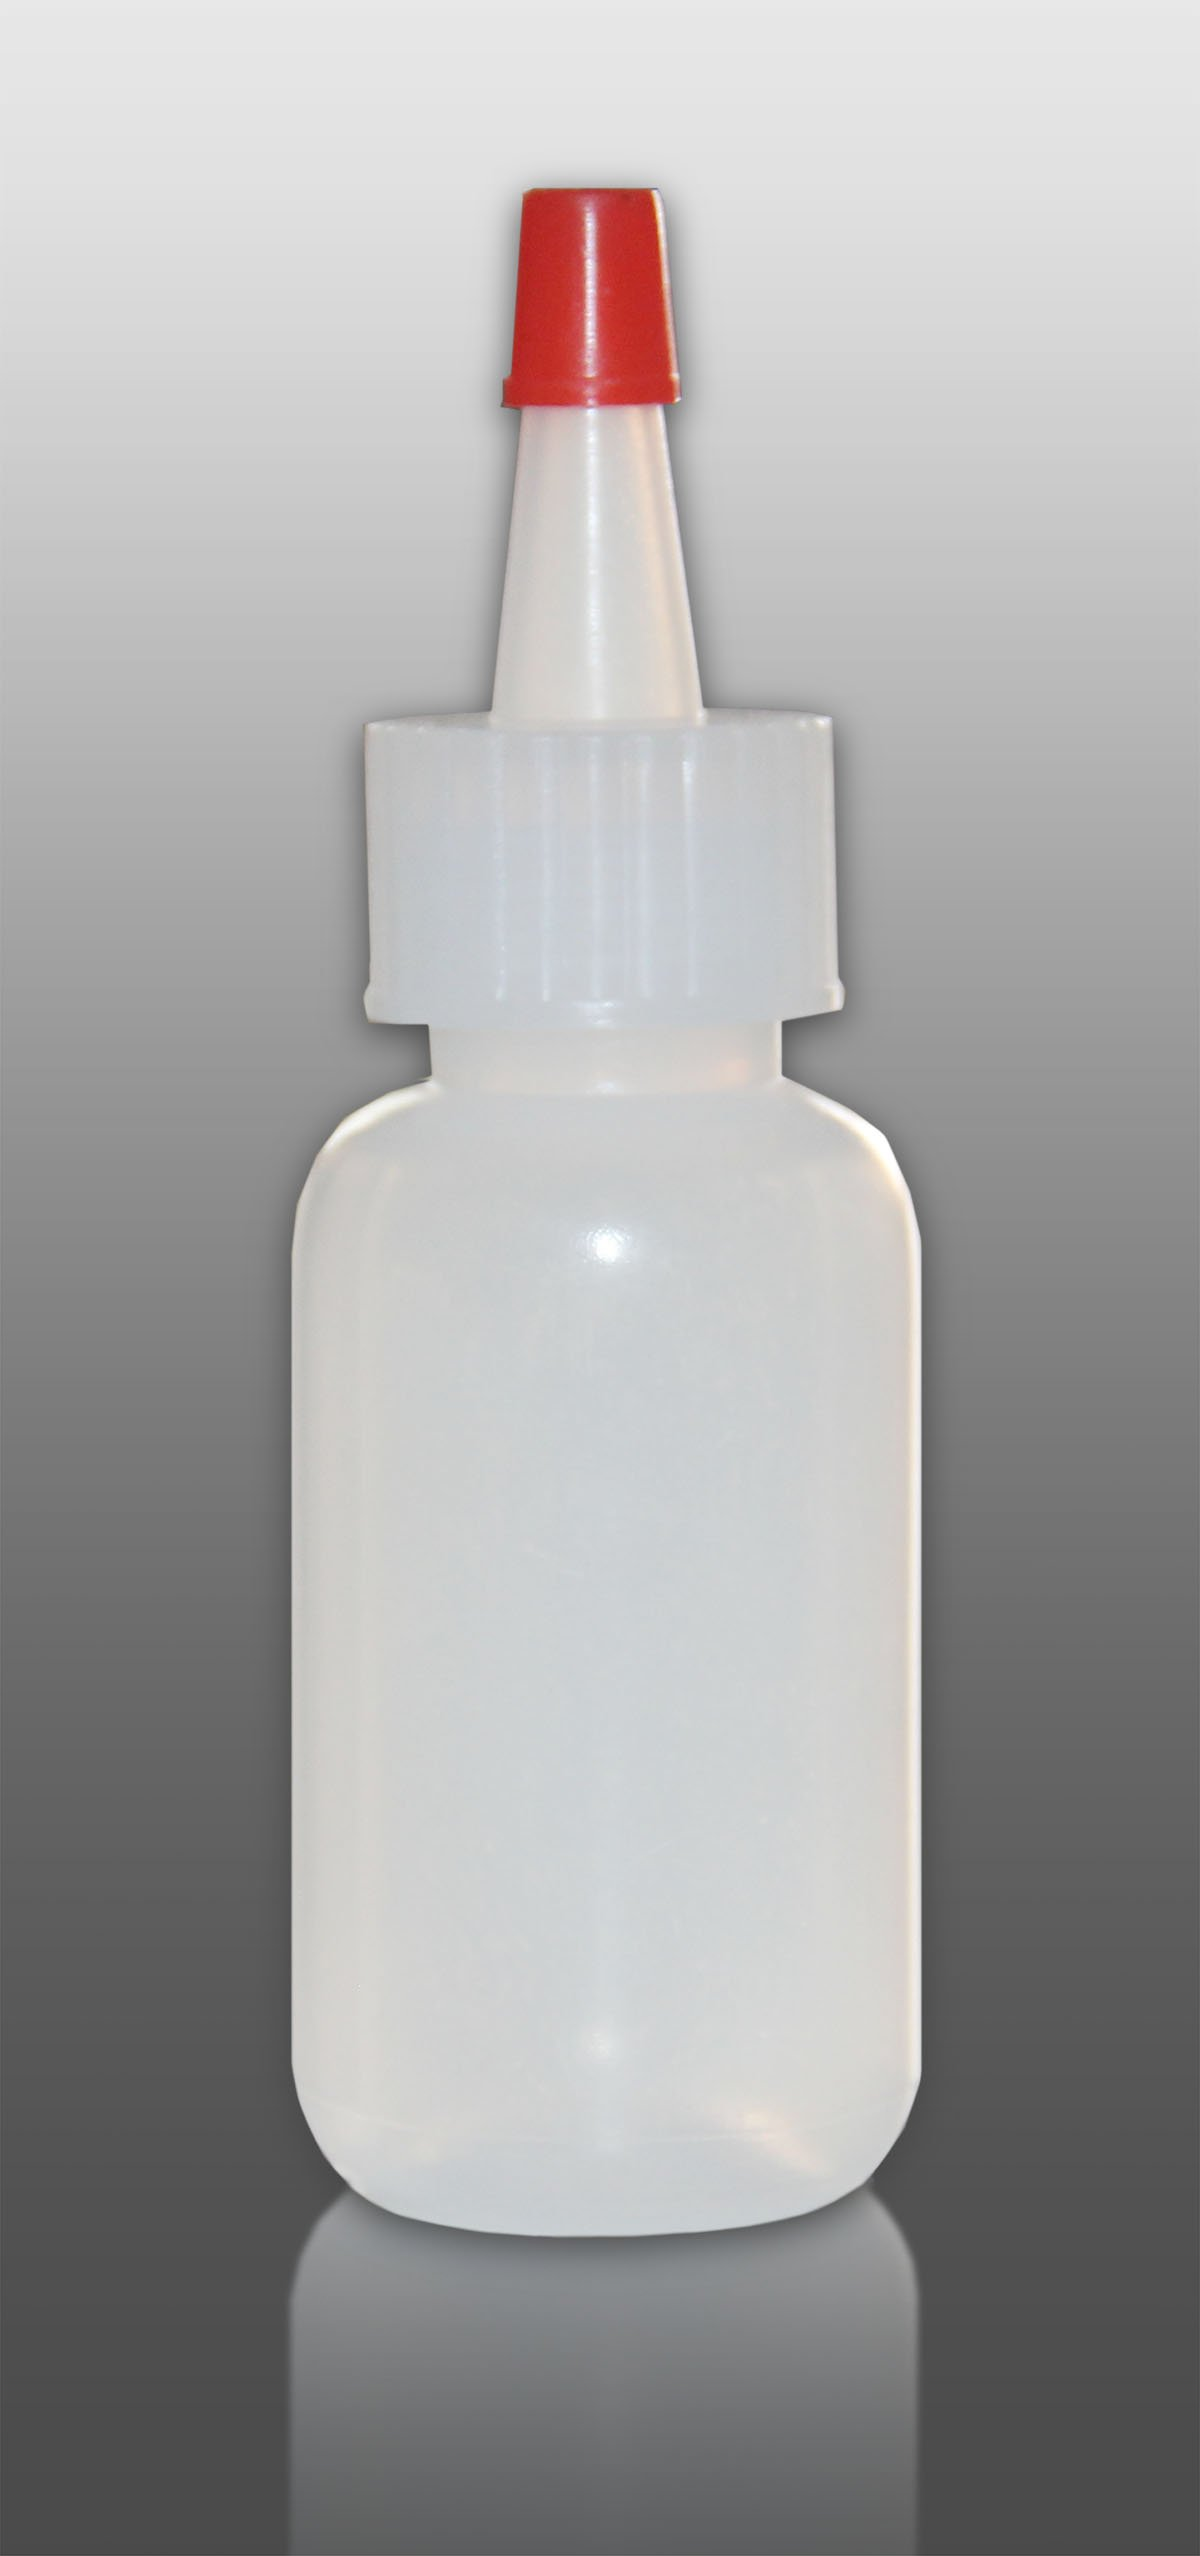 Sponix BioRx Yorker Bottle - .25 oz - LDPE - Spout Cap - Qty 25 (Cake Decorating, Hair Dye, Liquid Container)